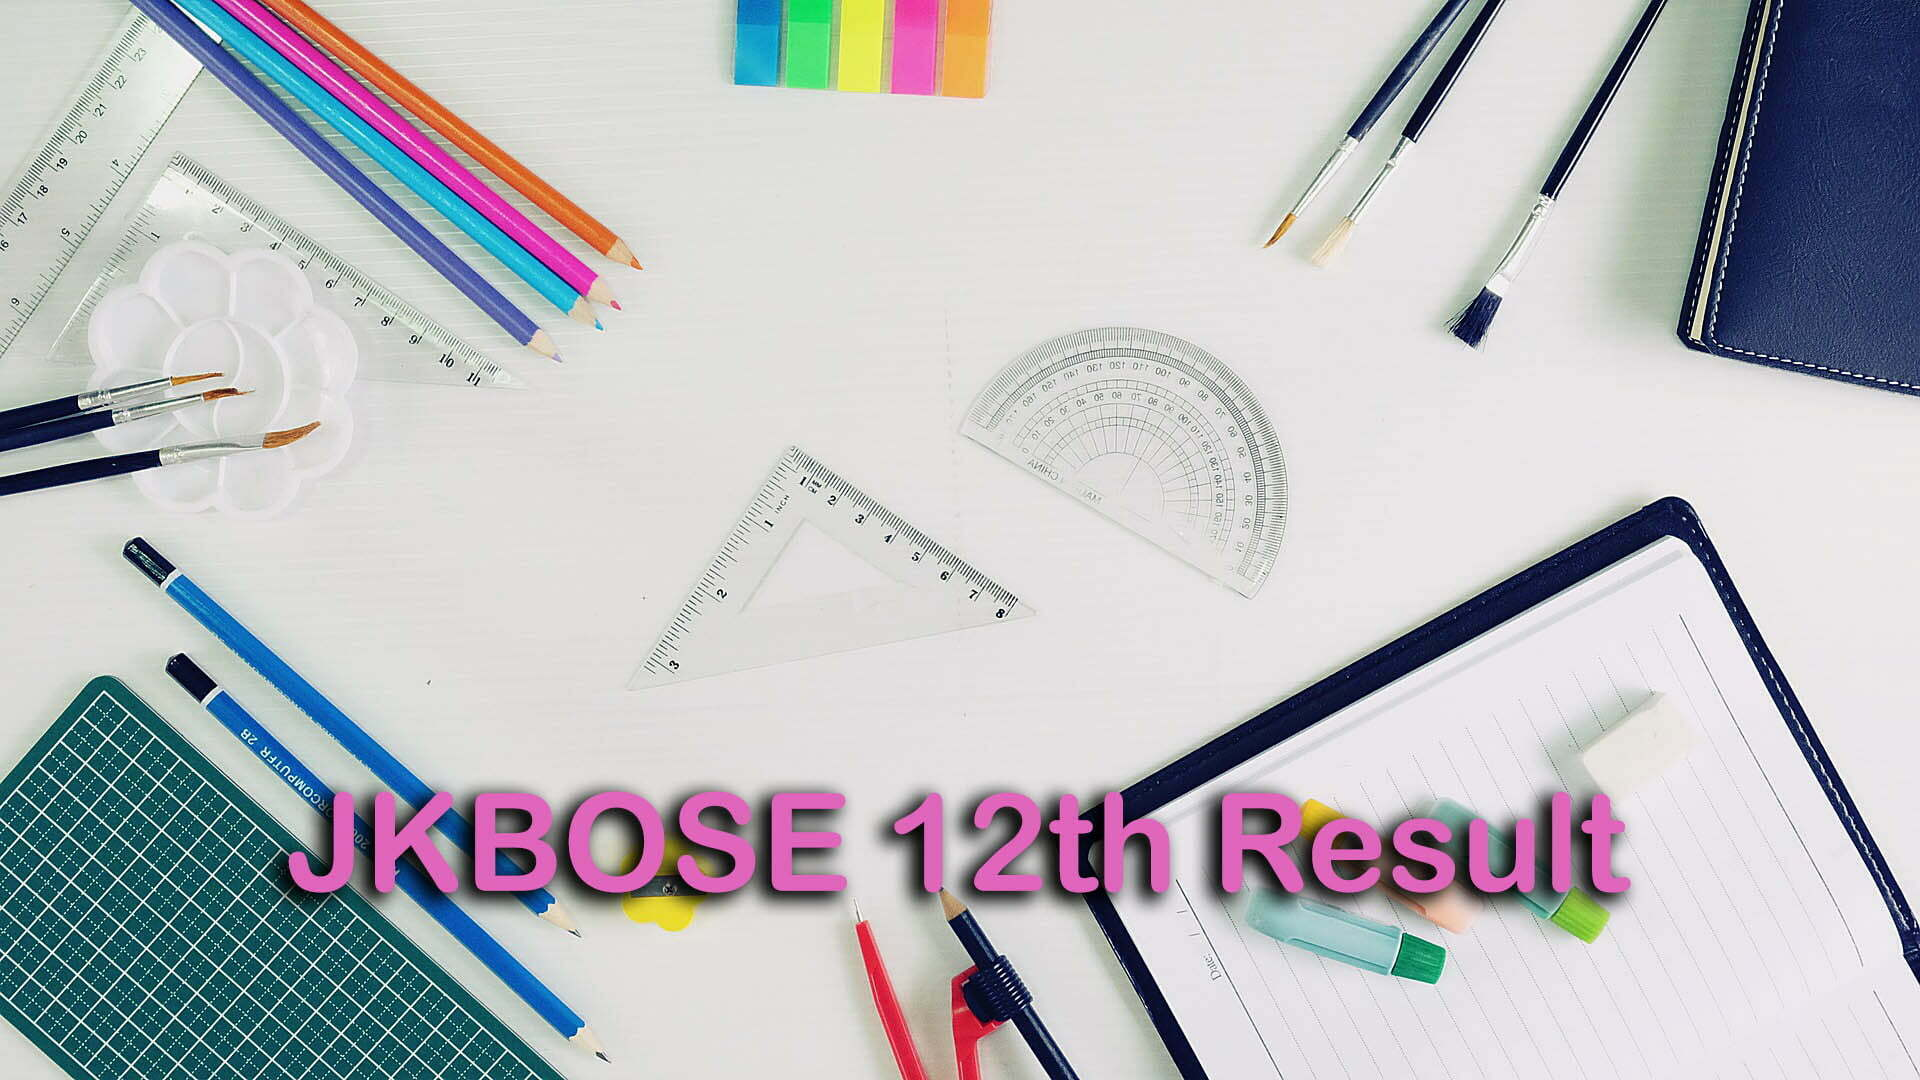 JKBOSE 12th Result